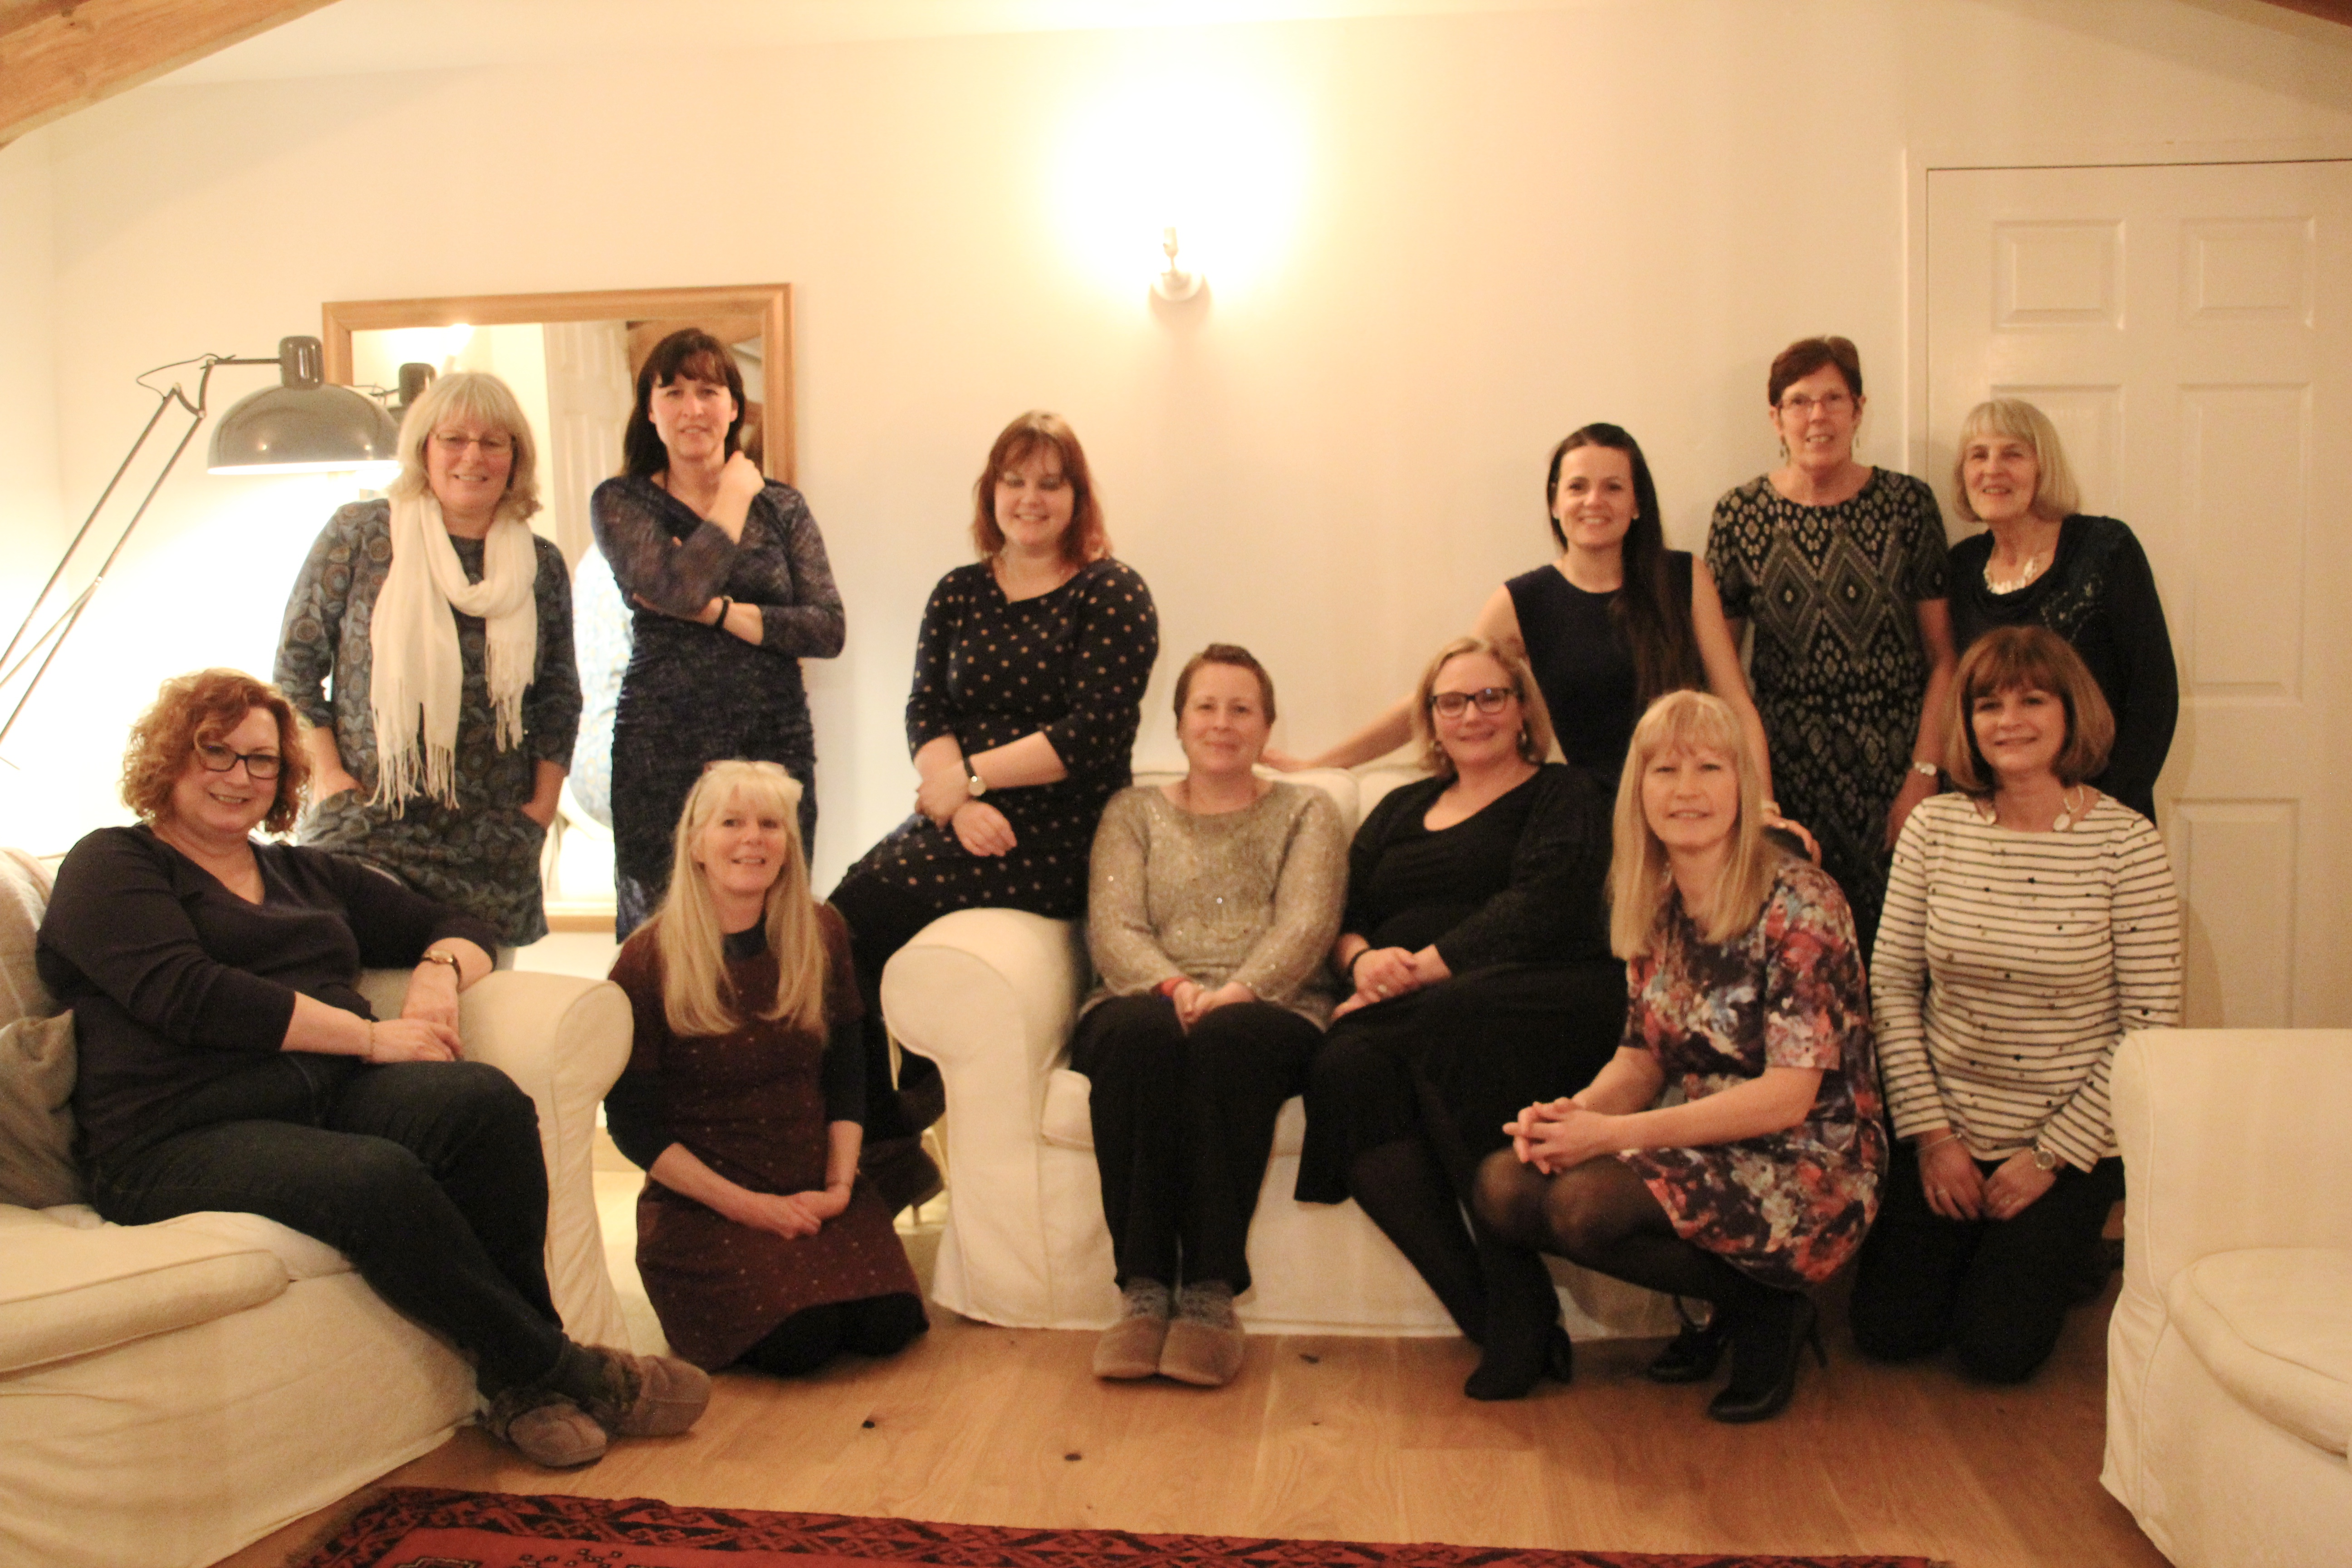 sewing retreat, new friends, totnes, devon